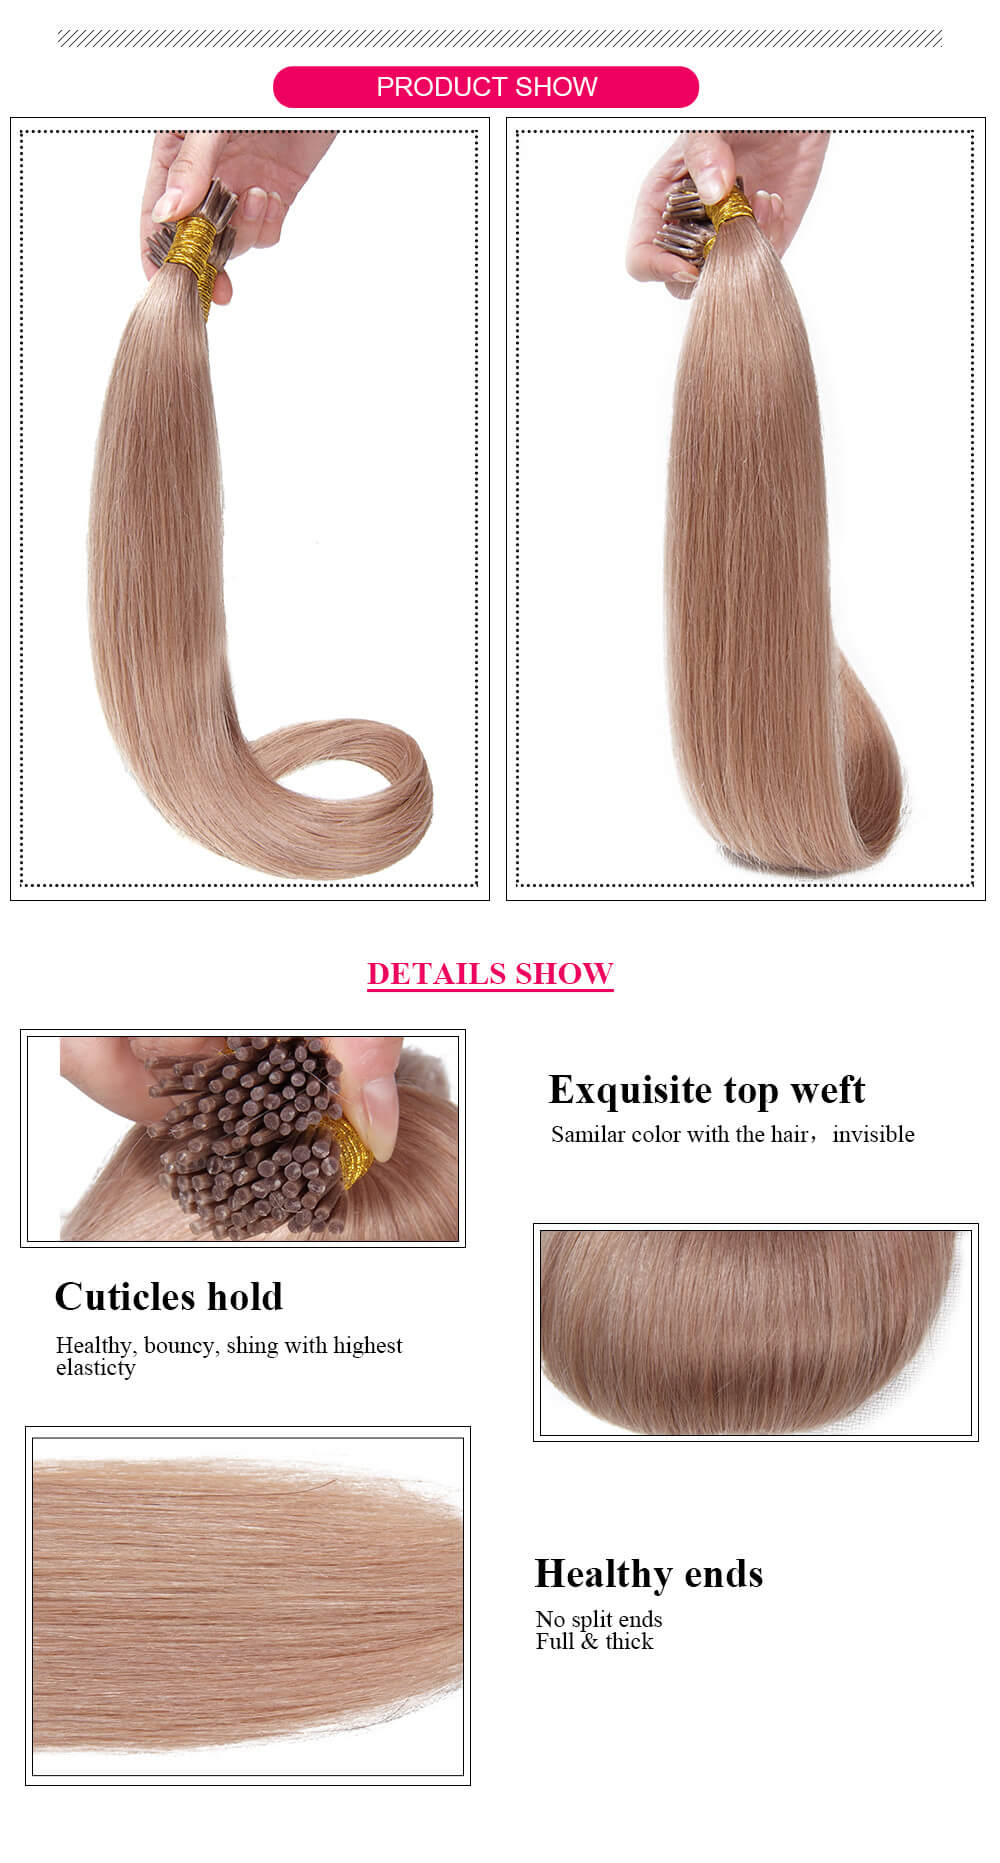 straight hair product details